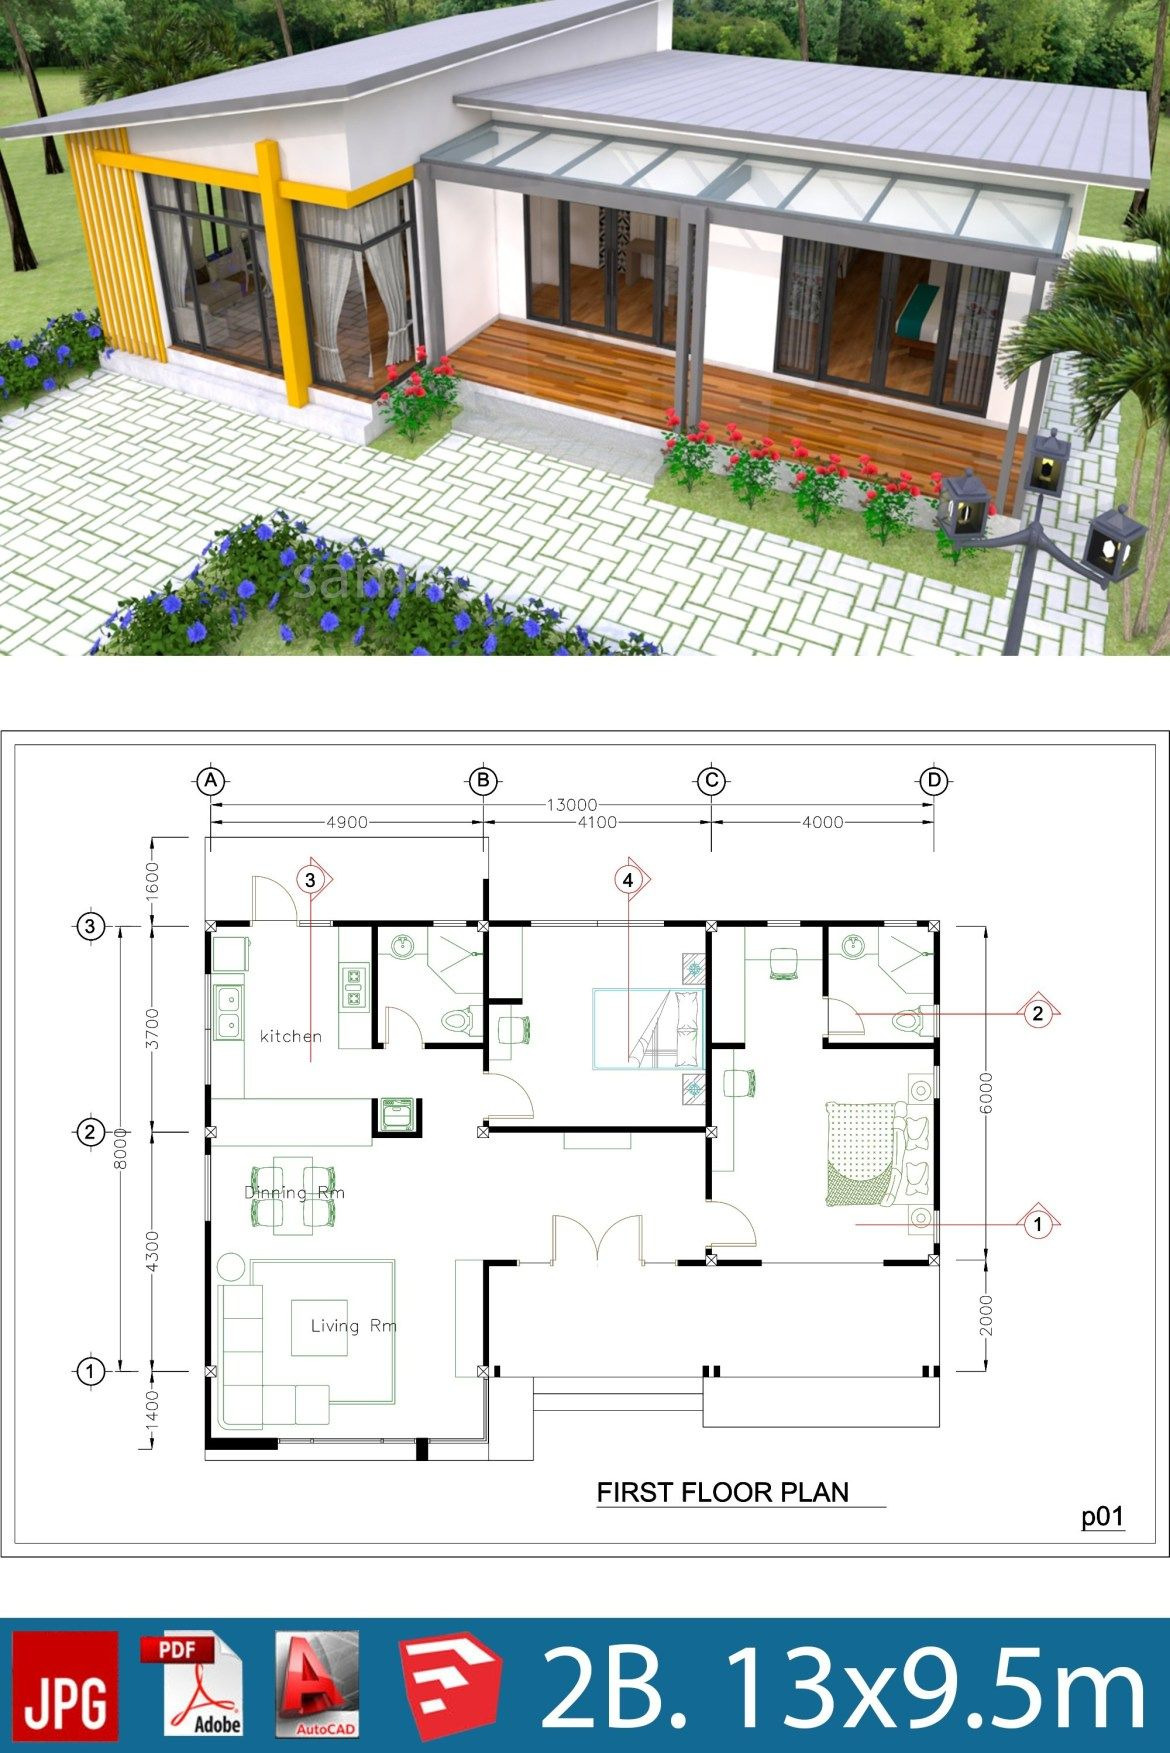 Designer House Plans with Interior Photos Awesome Plan 3d Interior Design House Plans 13x9 5m Full Plan 3beds